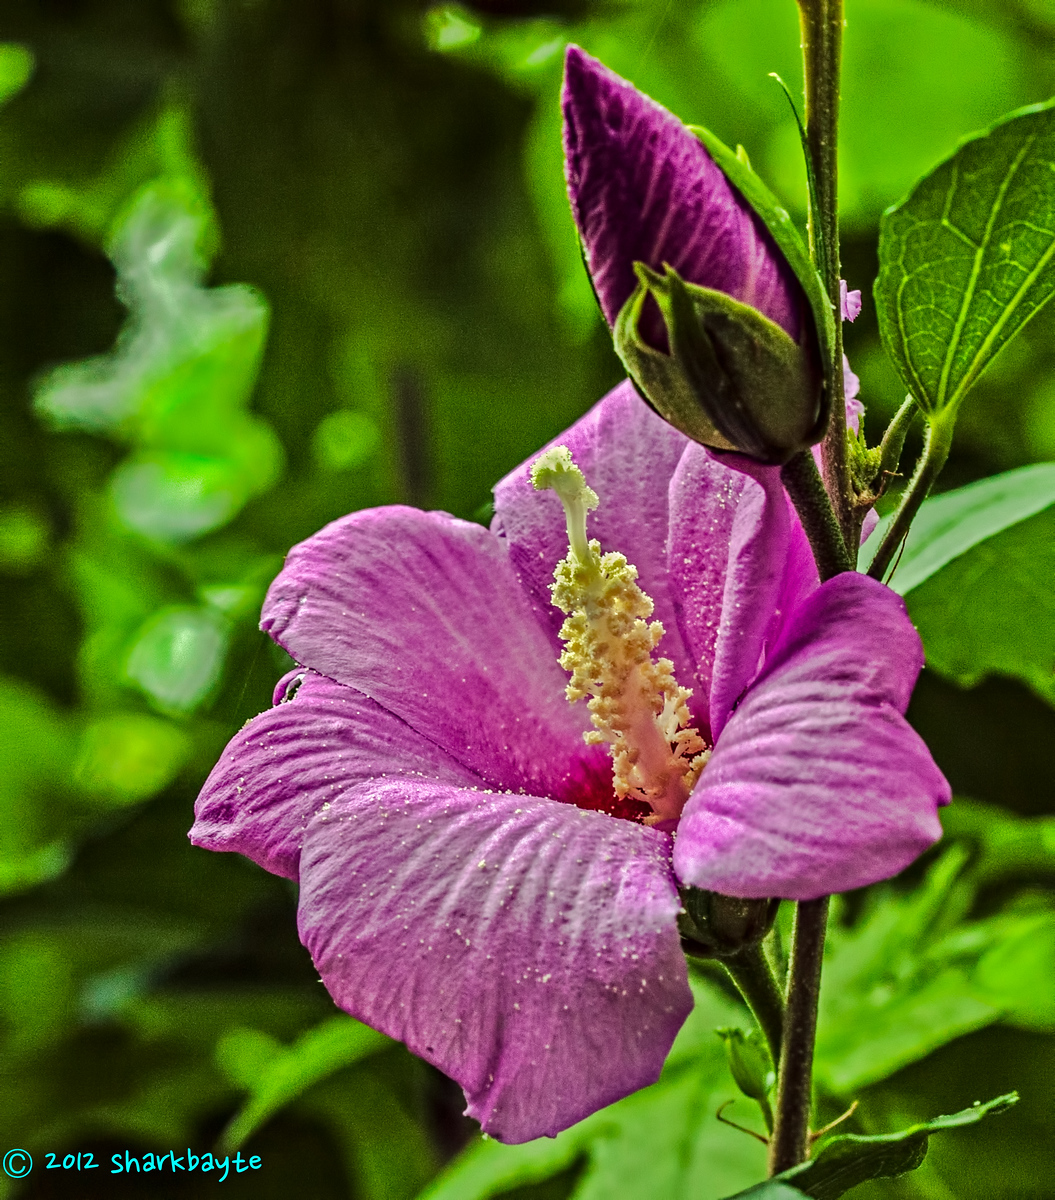 Rose of Sharon July 11, 2012-Finally getting some flowers on the bush, management went around and did their pruning in the fall, I didn't think this bush would flower again. There are fewer flowers than in previous years but as I got closer I saw a lot of buds growing. Day 11/365